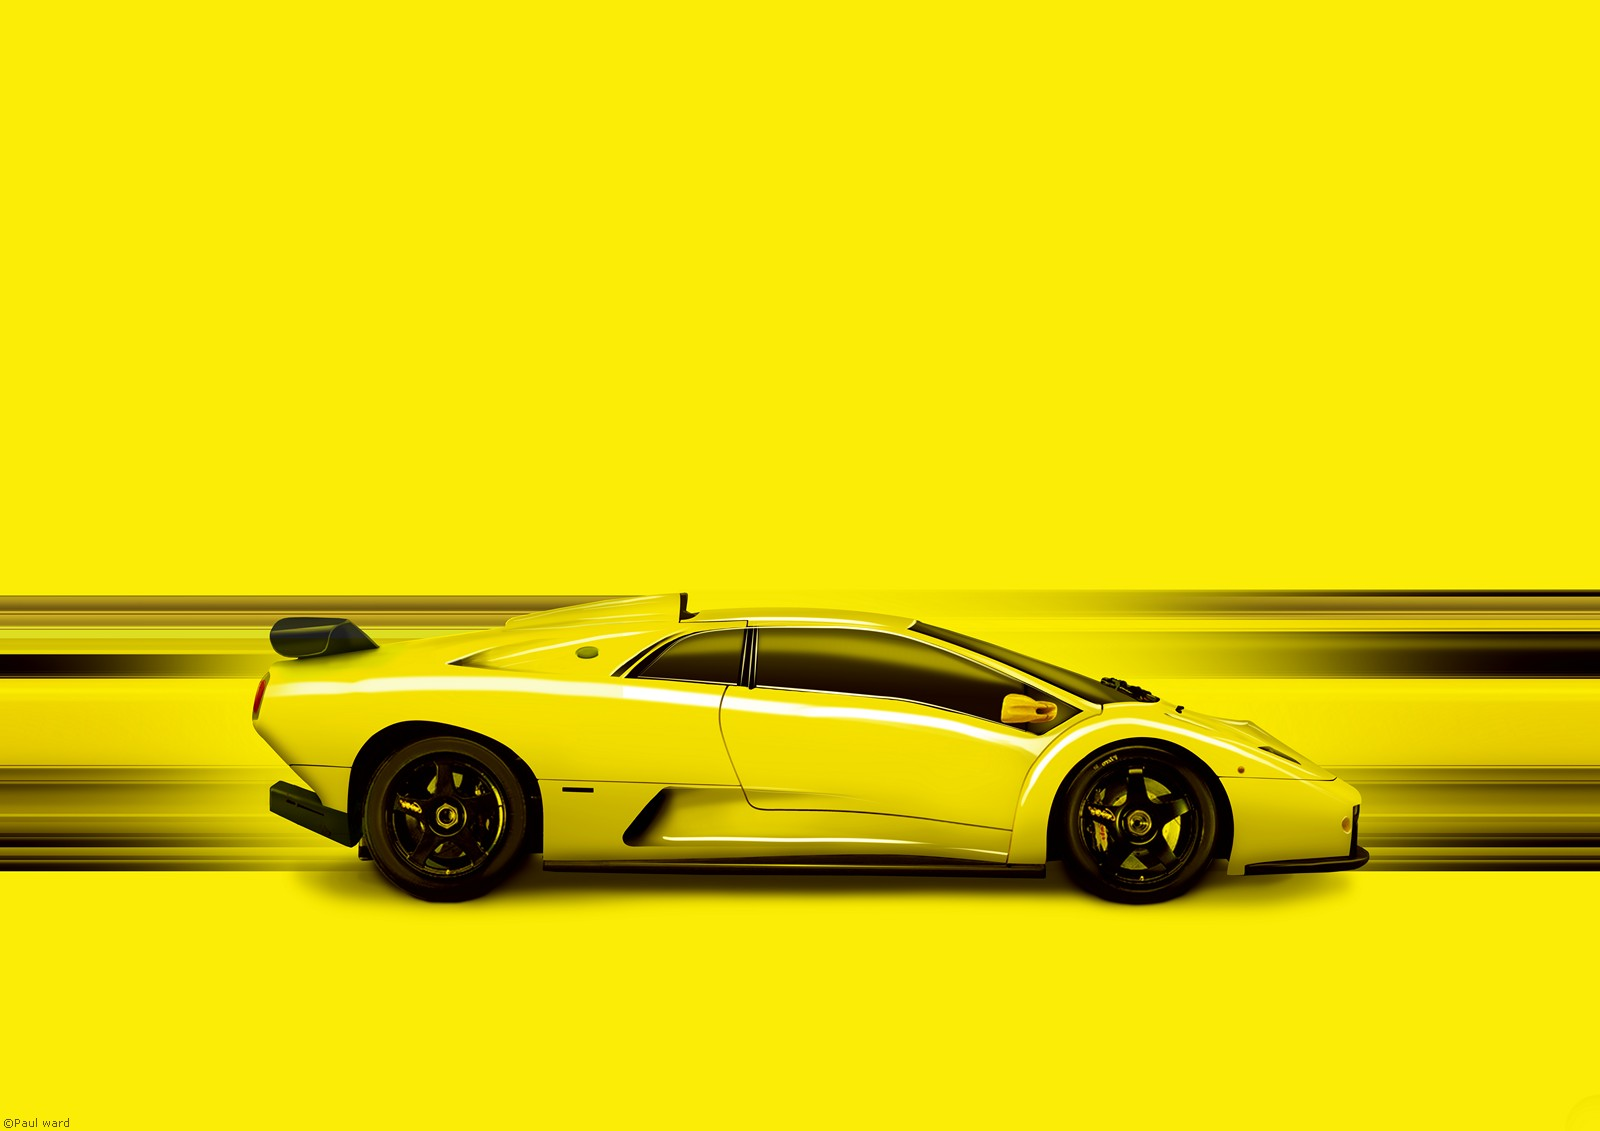 Lamborghini Diablo GT car graphic art image by automotive artist Paul Ward